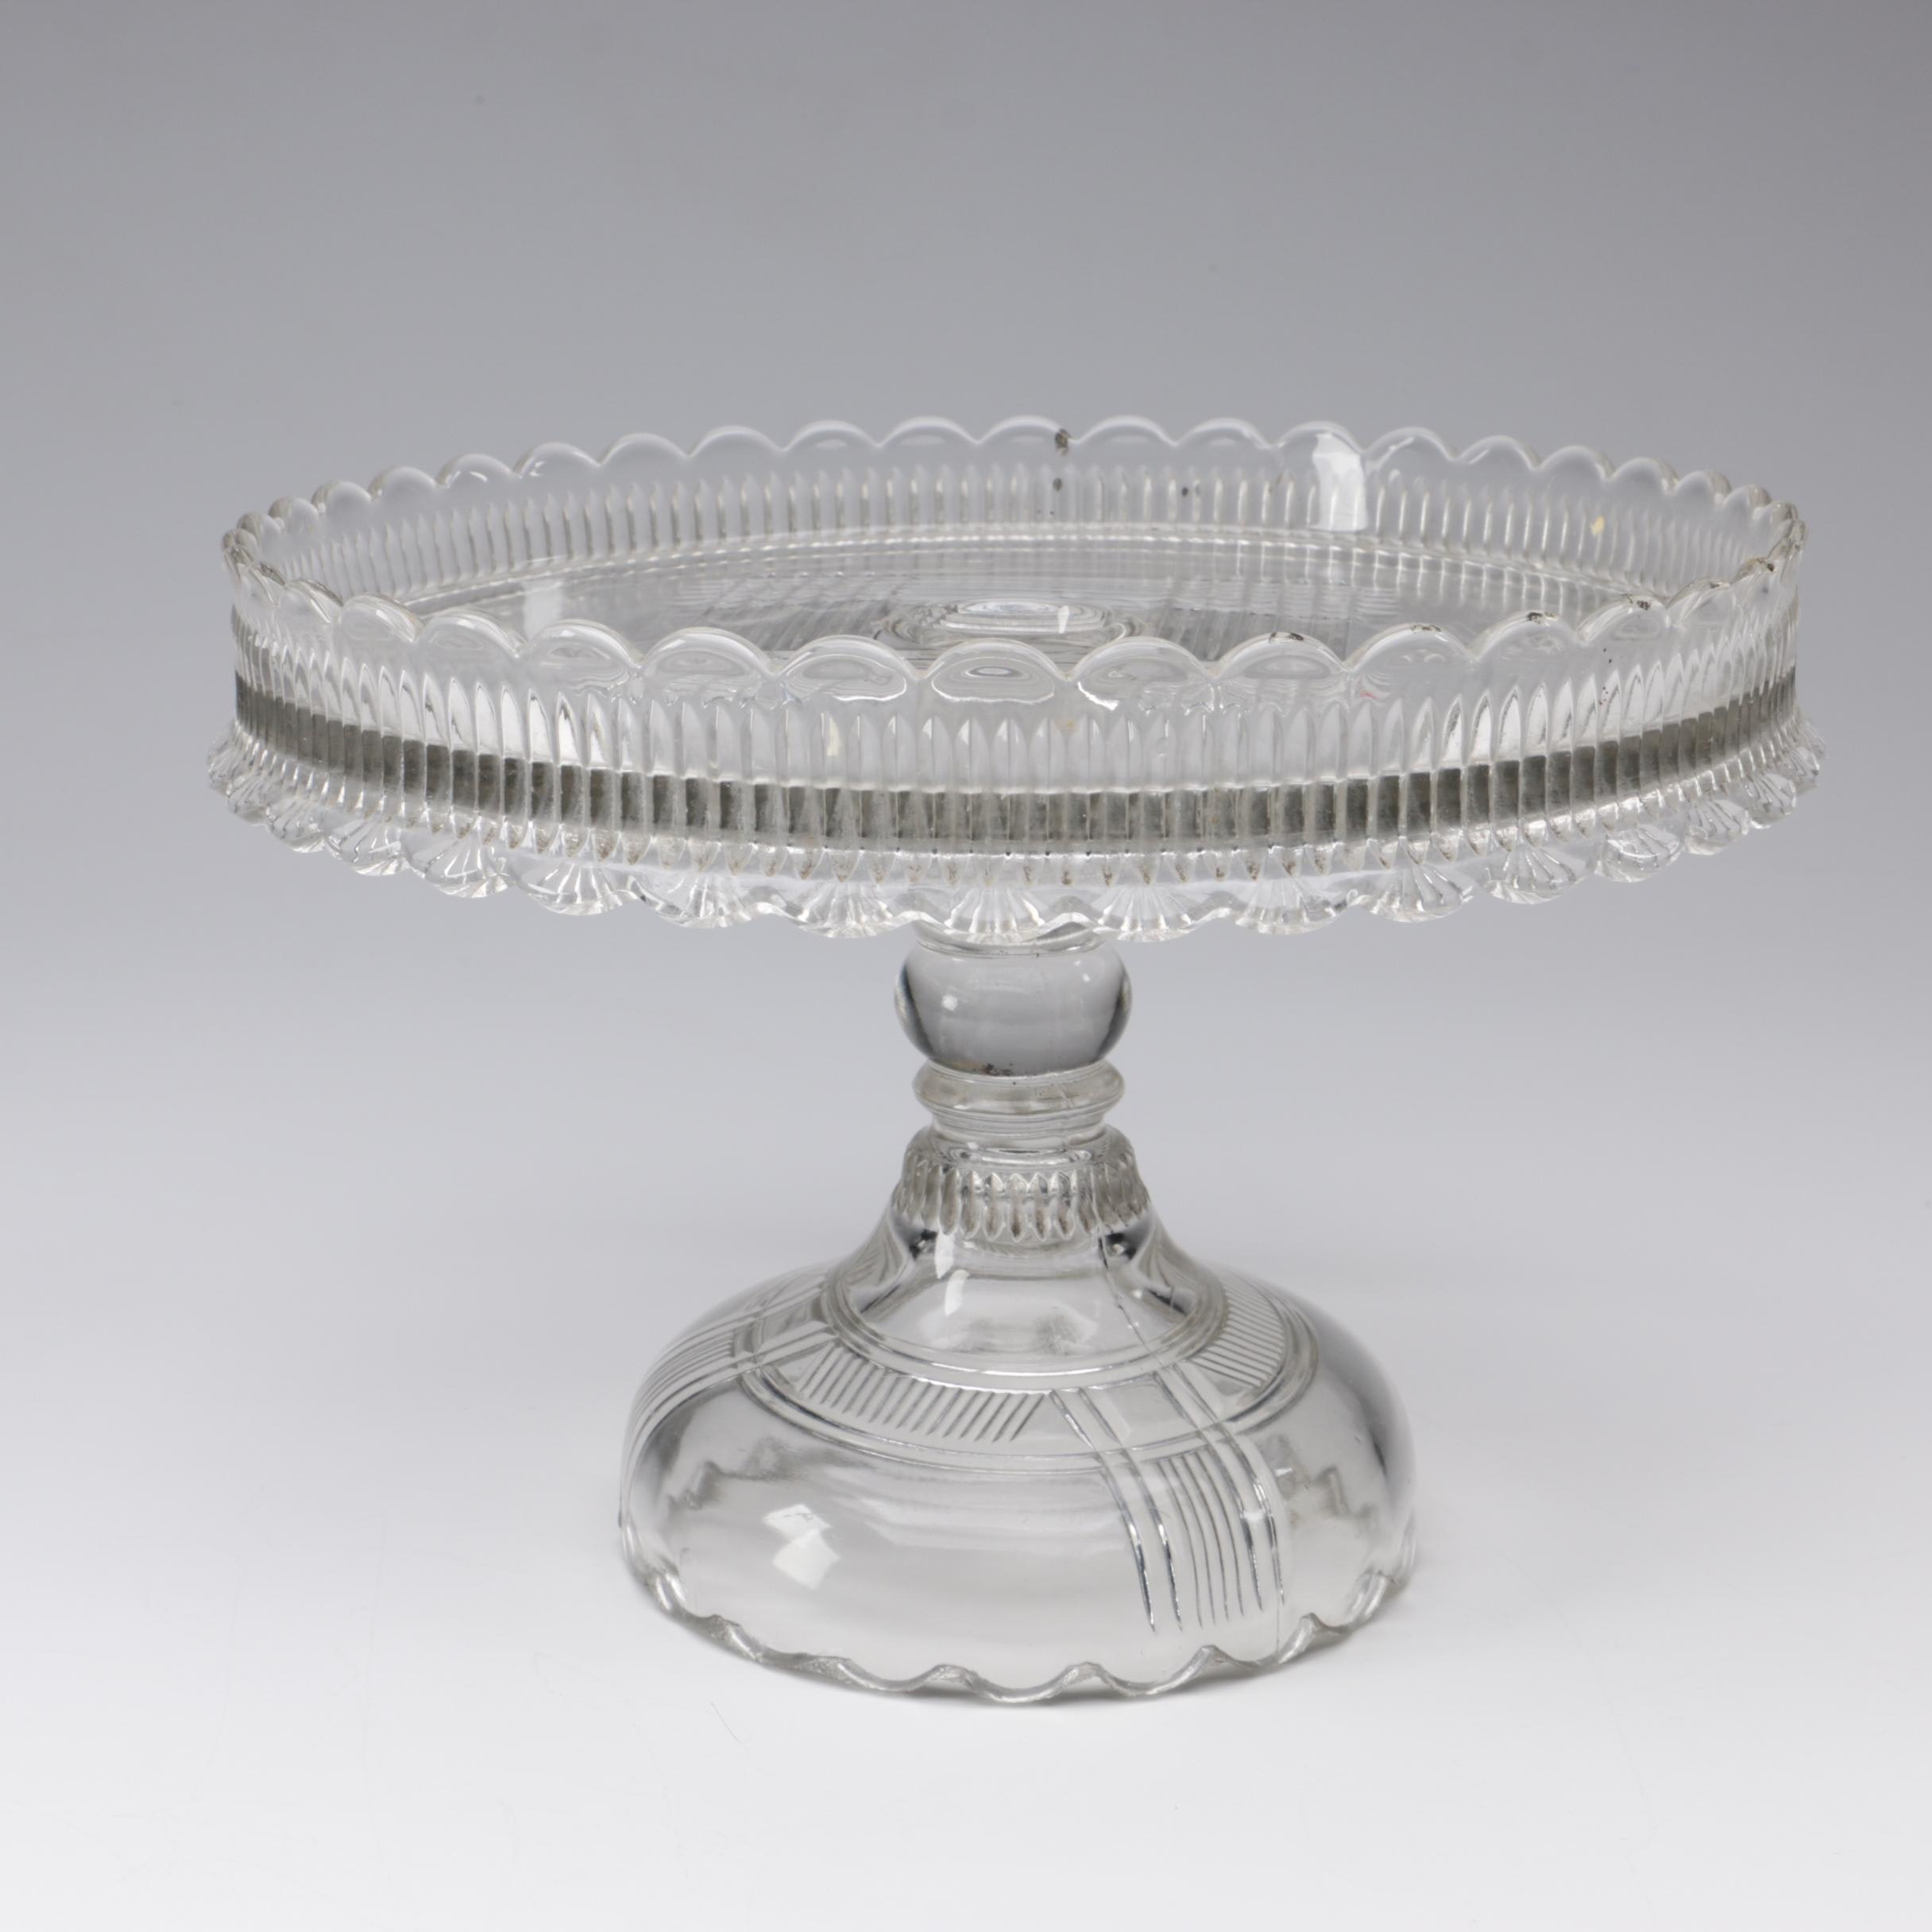 Pressed Glass Pedestal Cake Stand, Early 20th Century